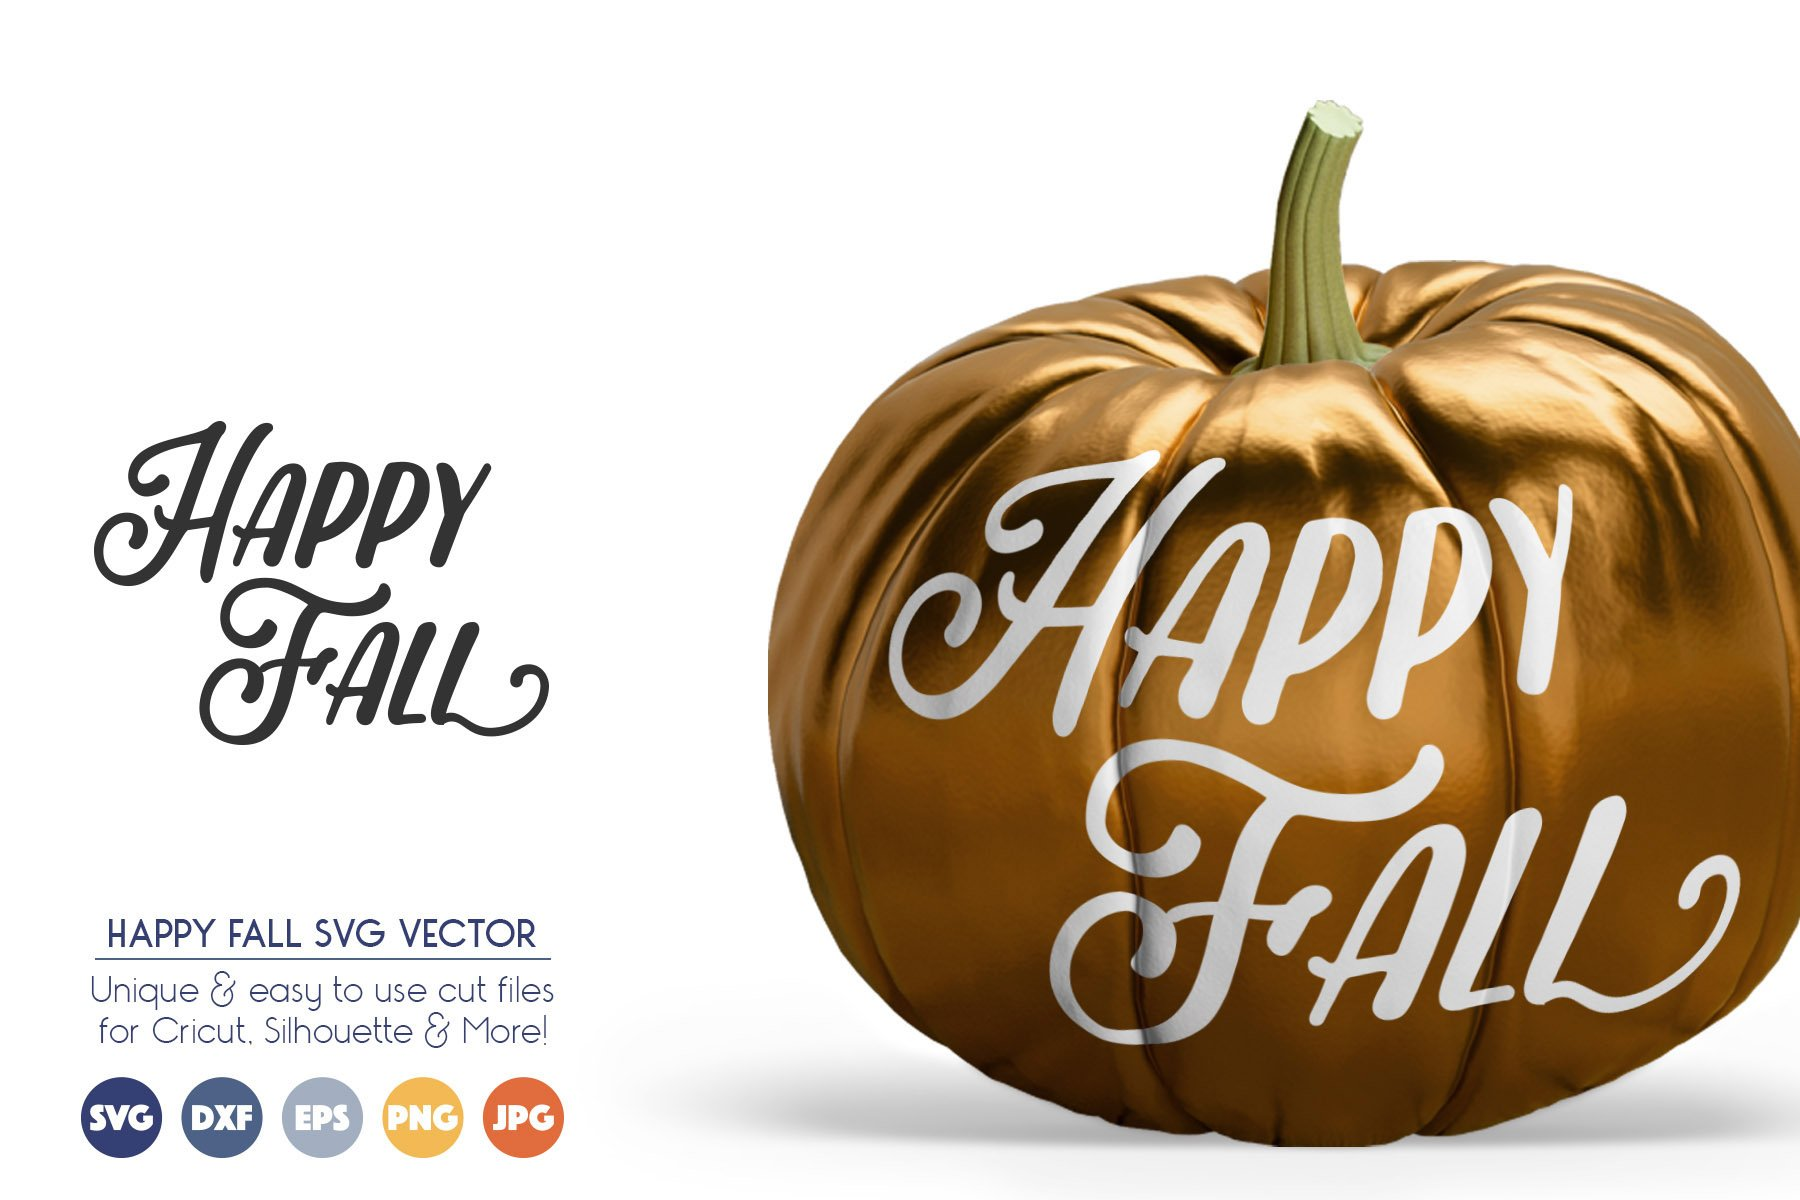 Happy Fall - Autumn SVG Cutting Files example image 1